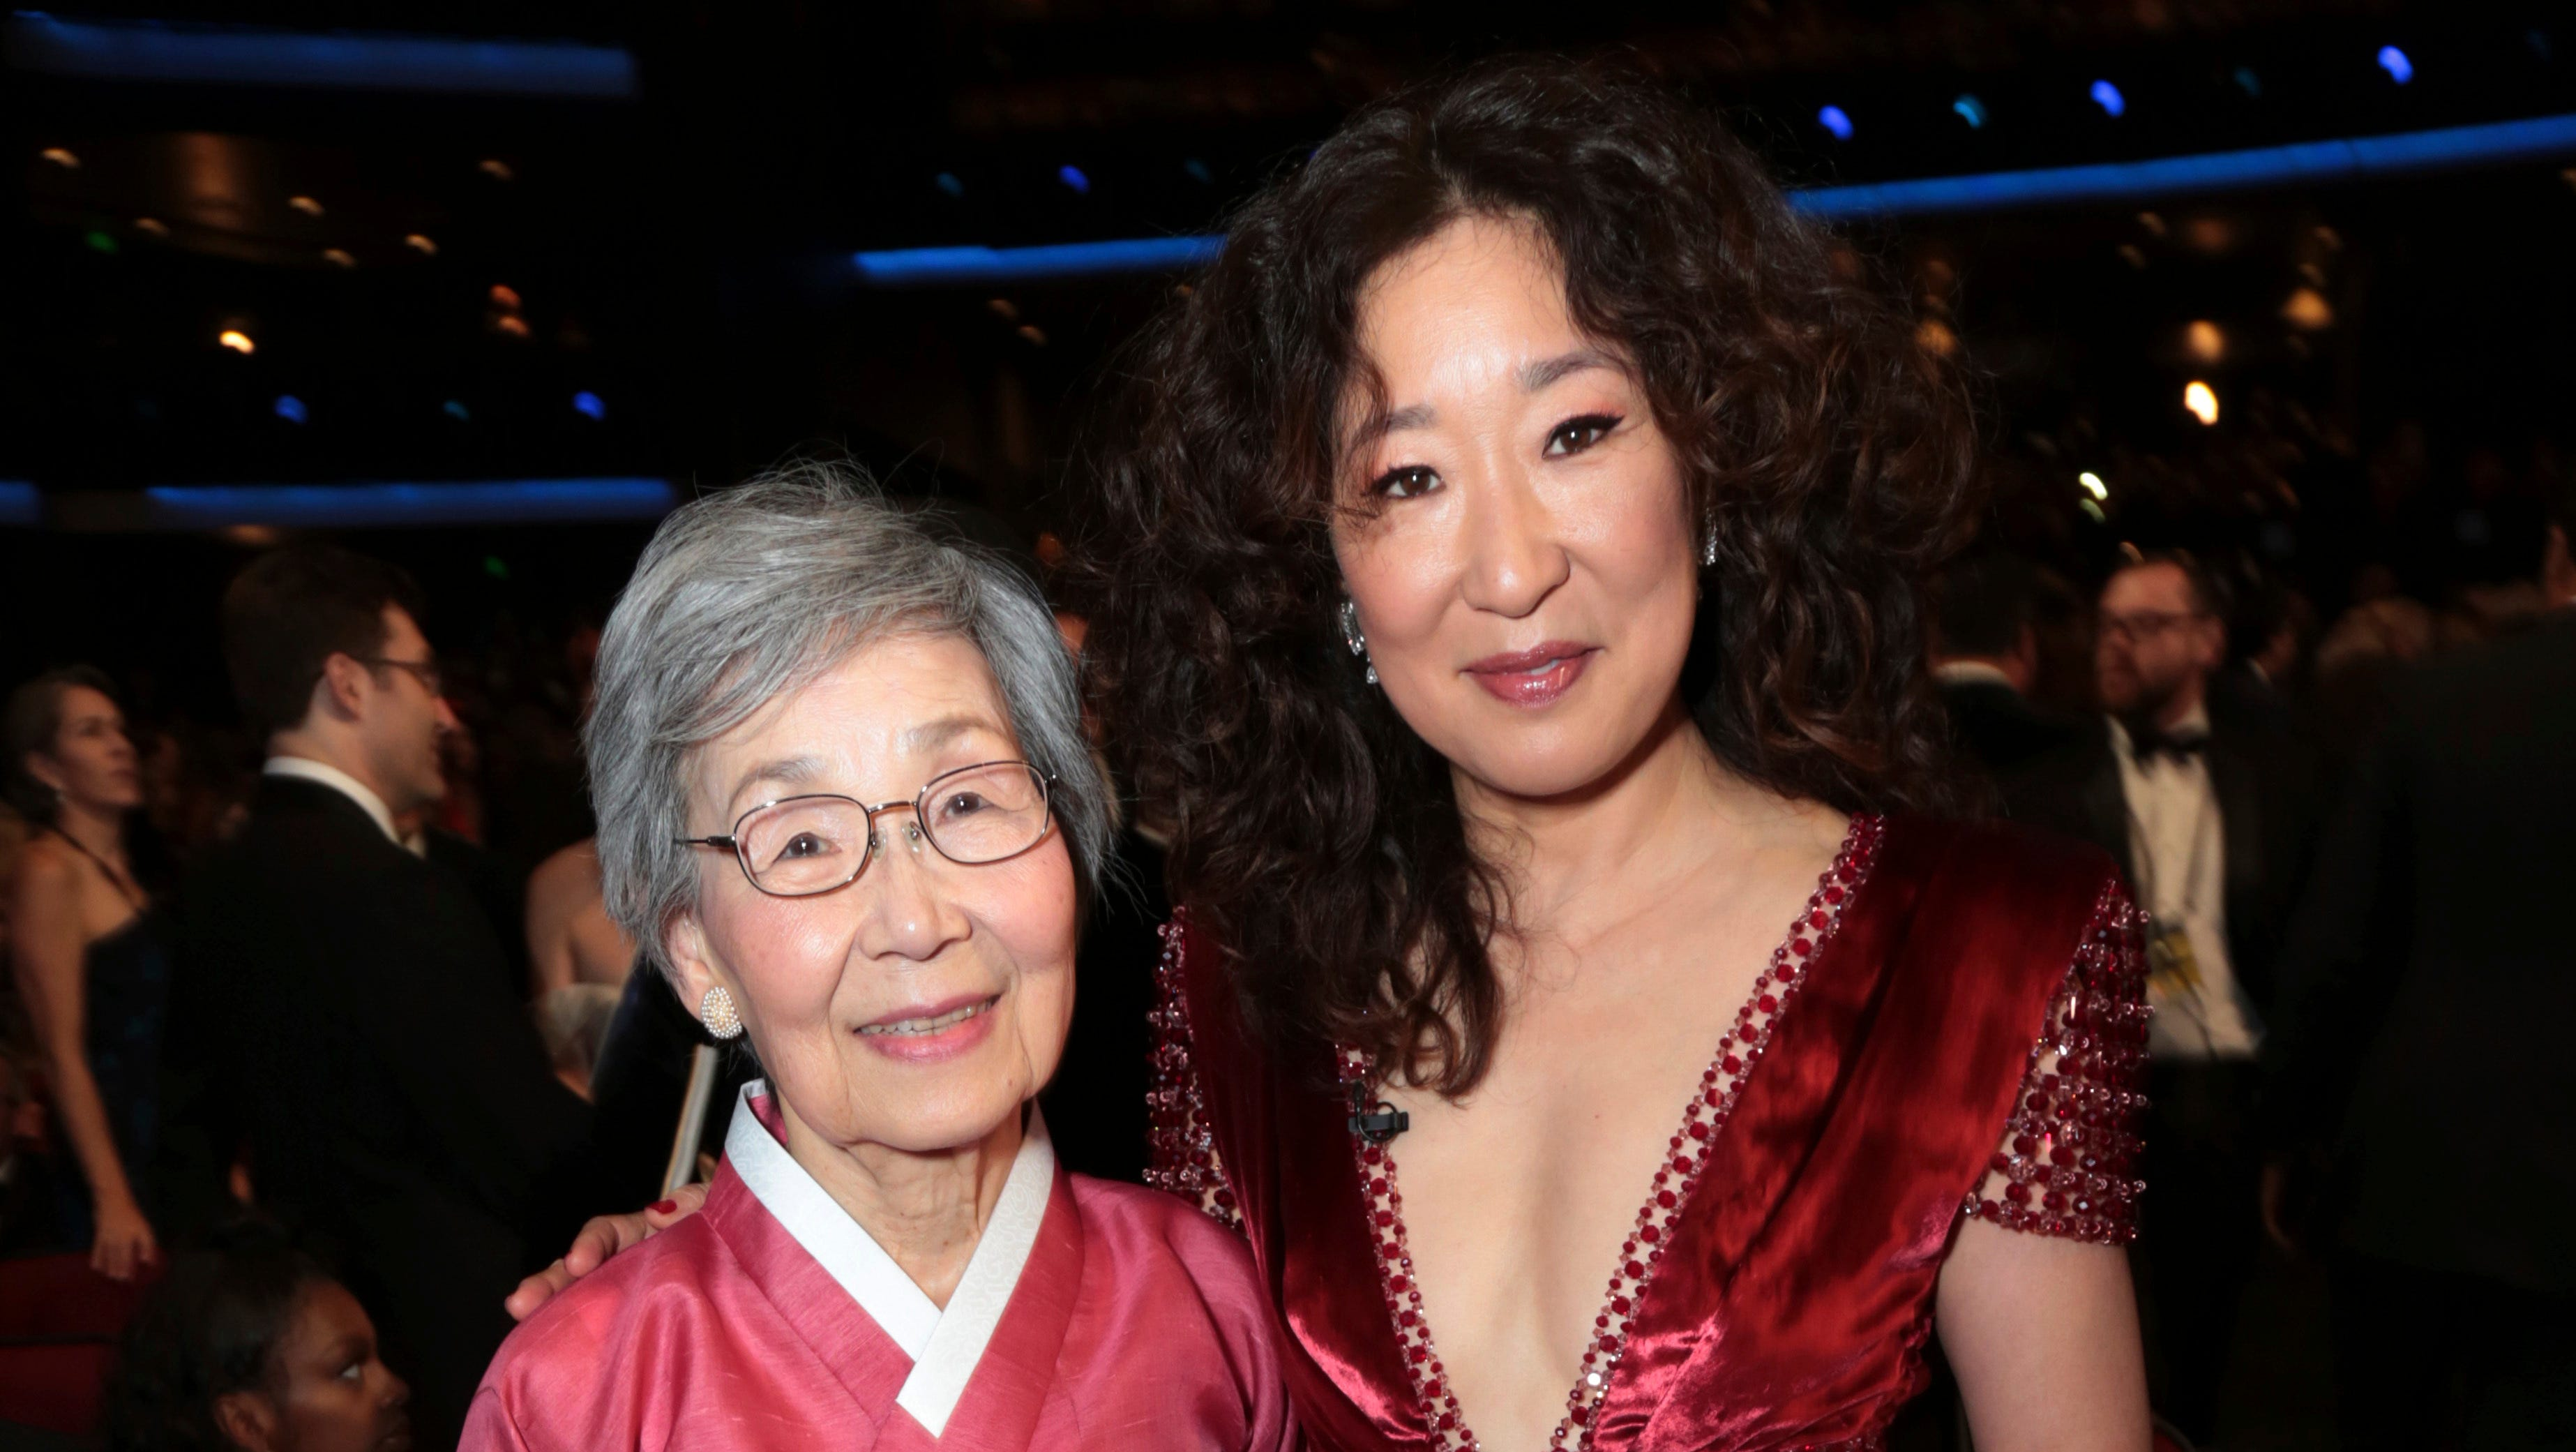 Sandra Oh poses with her mom, Young-Nam Oh, at the Governor's Ball.